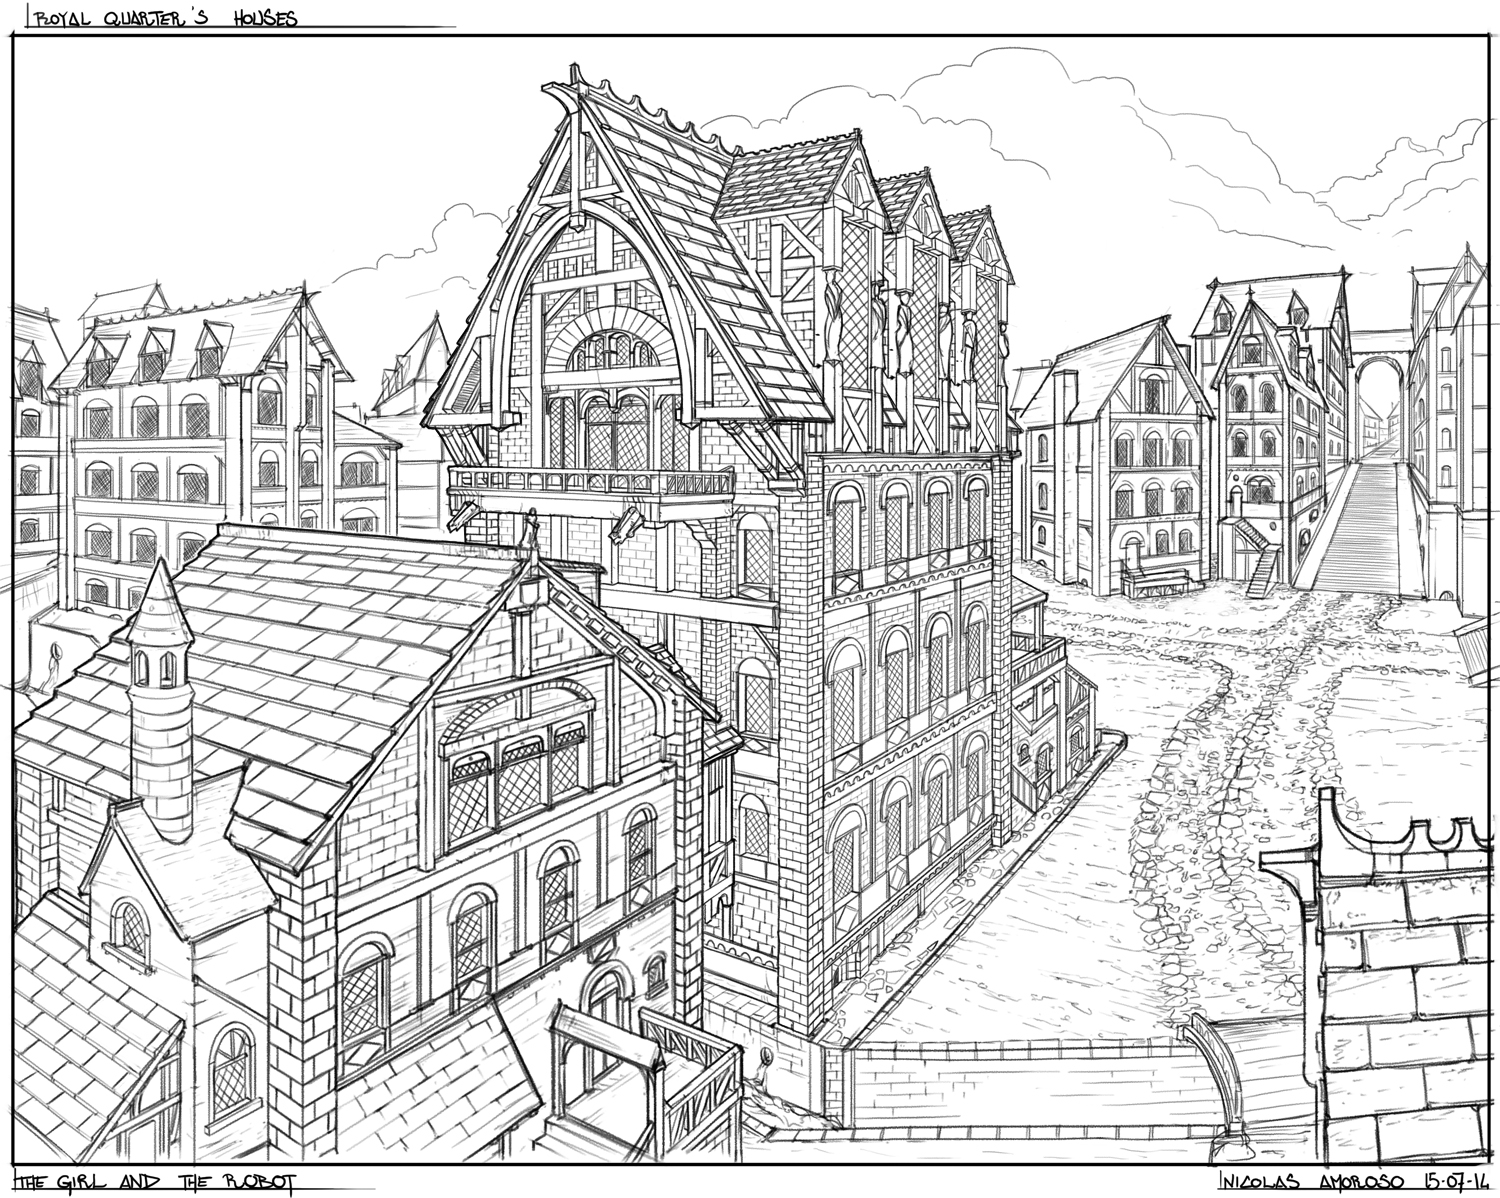 Les images de Niconoko. - Page 3 Royal_quarter_houses_perspective